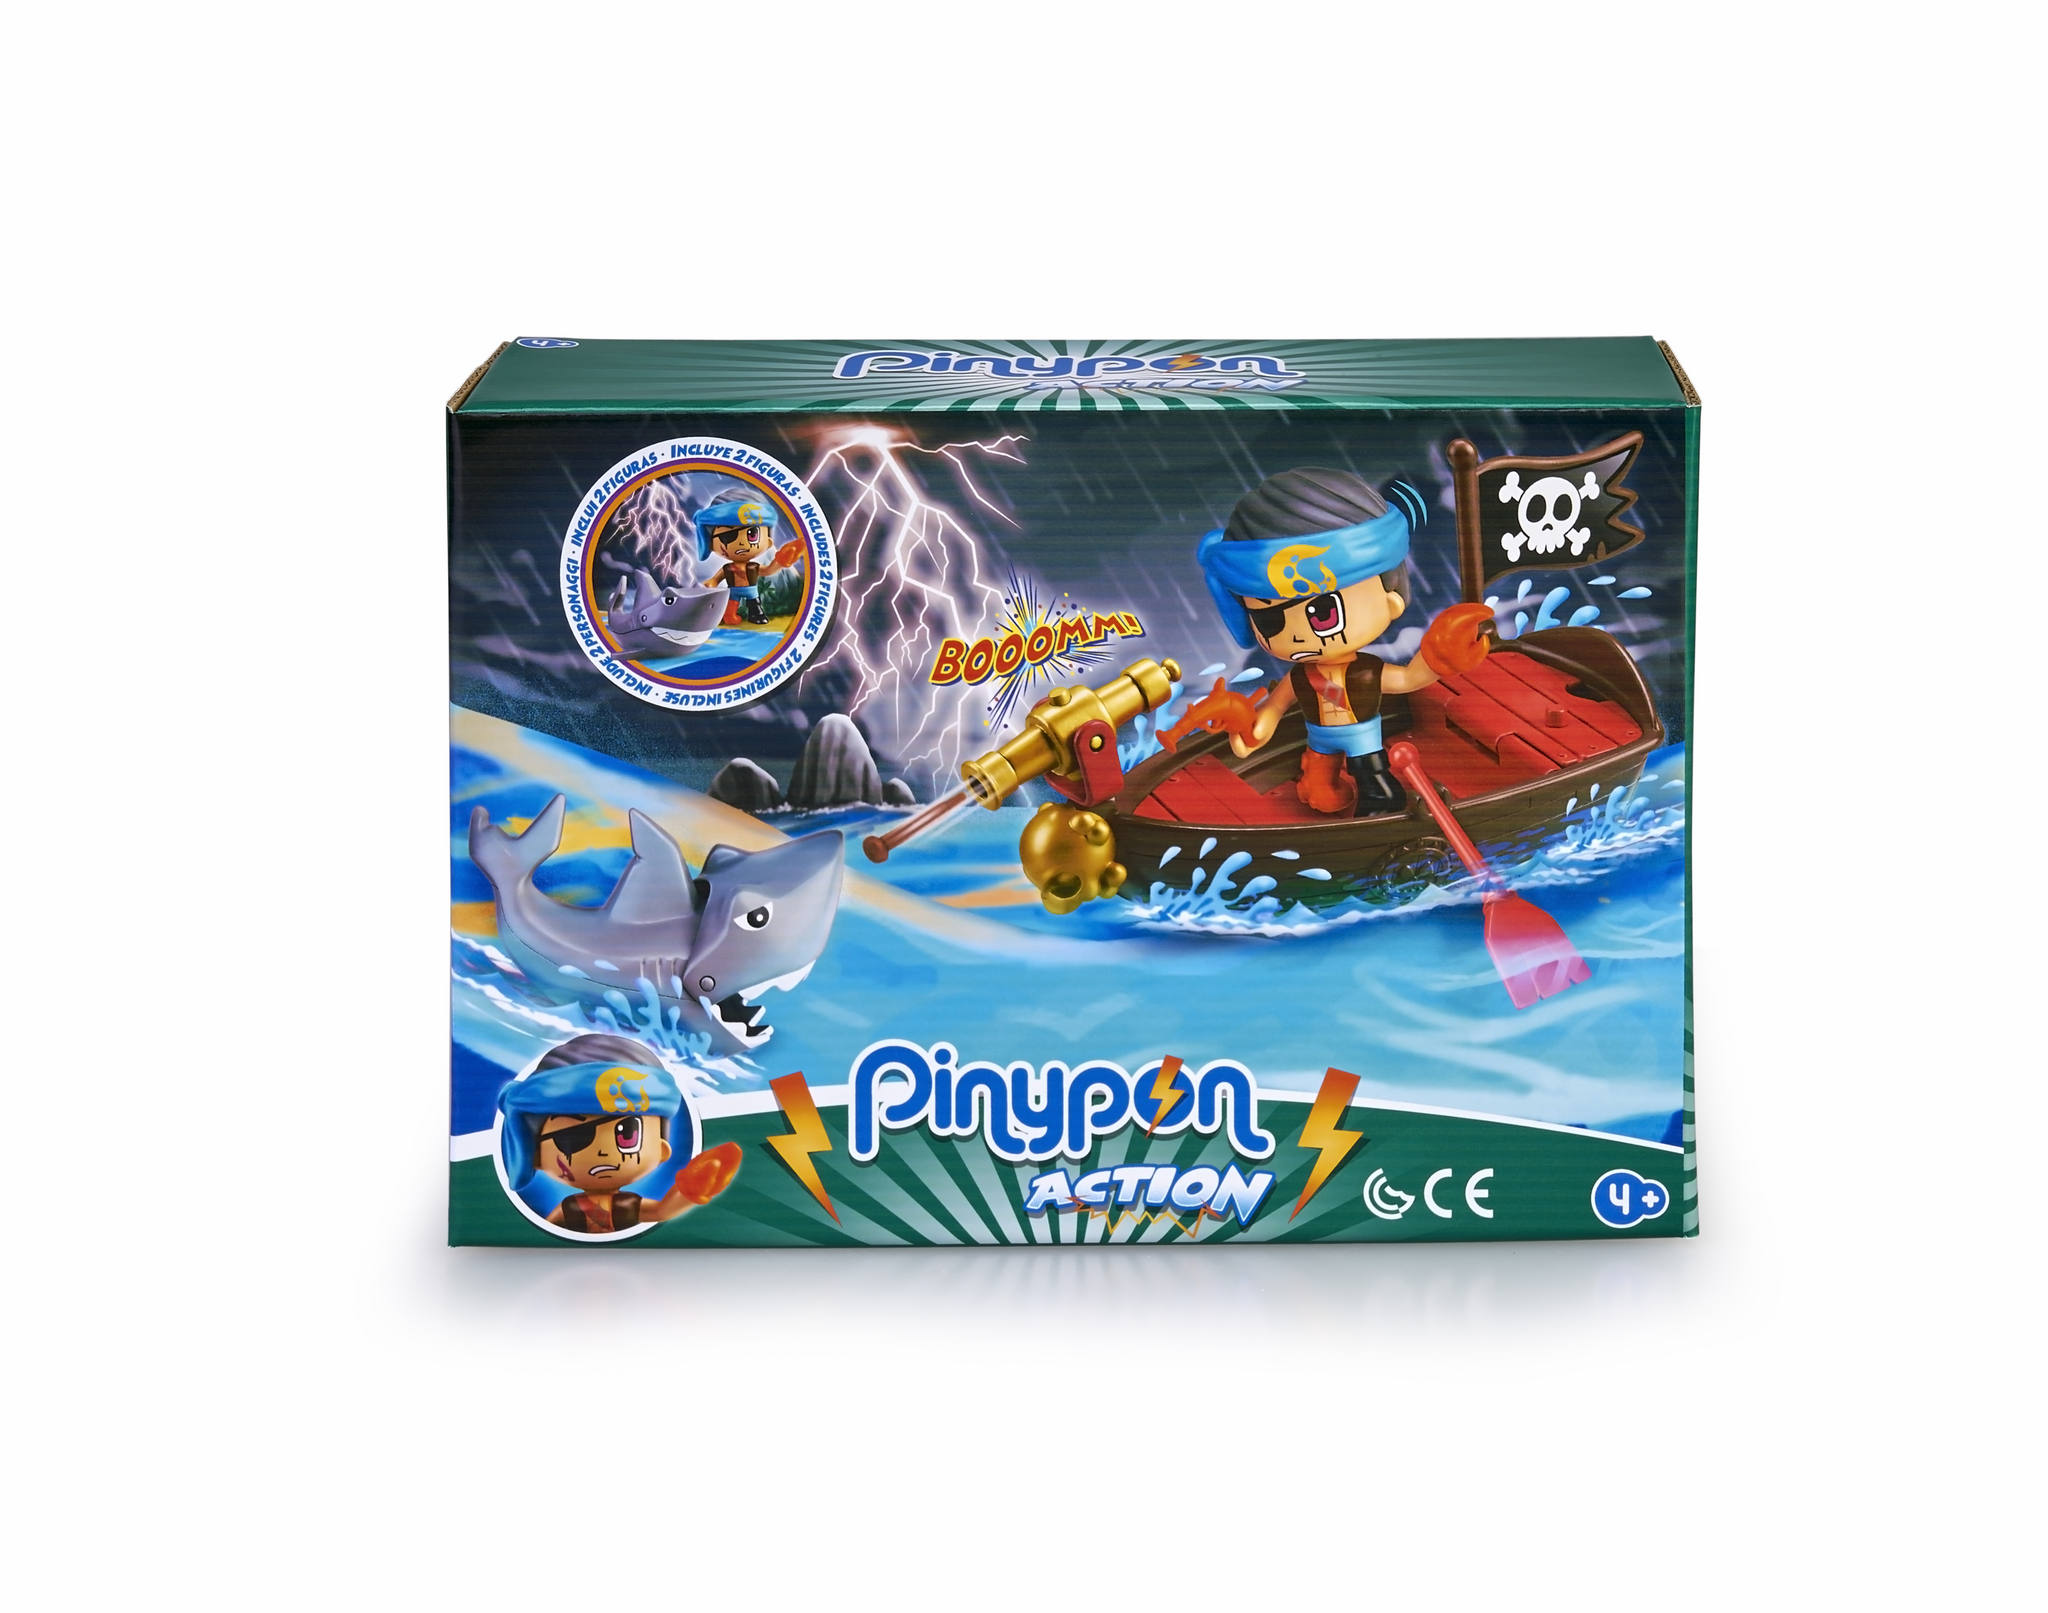 PINYPON ACTION SCENE PIRATAS 15587 V26220